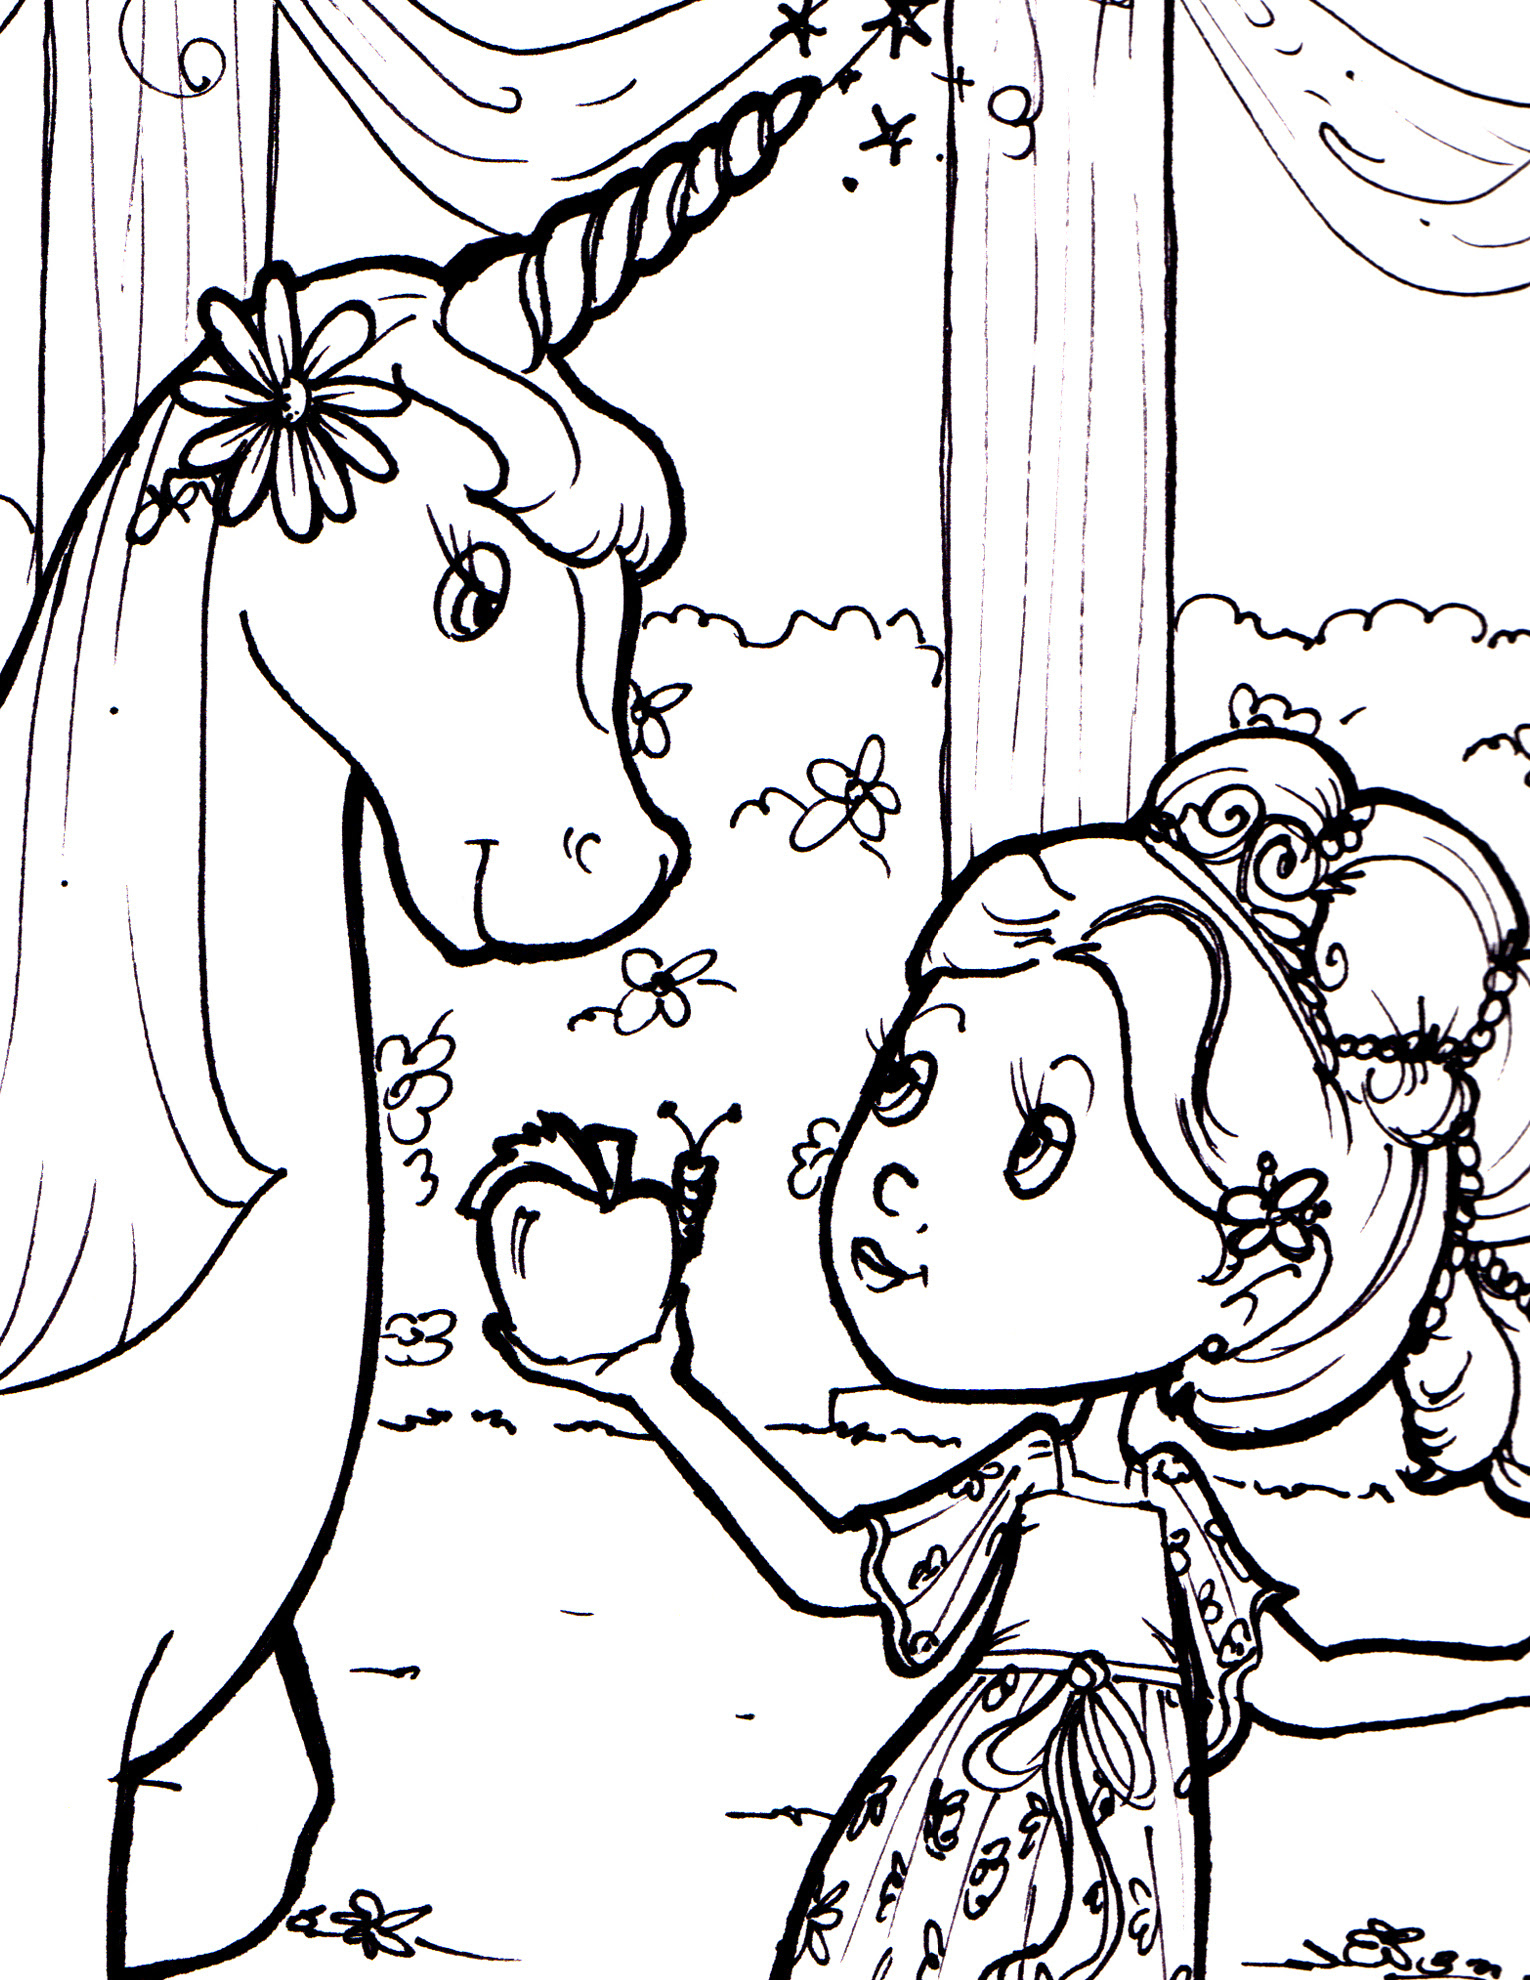 Free Downloadable Coloring Sheet - Princess and the ...